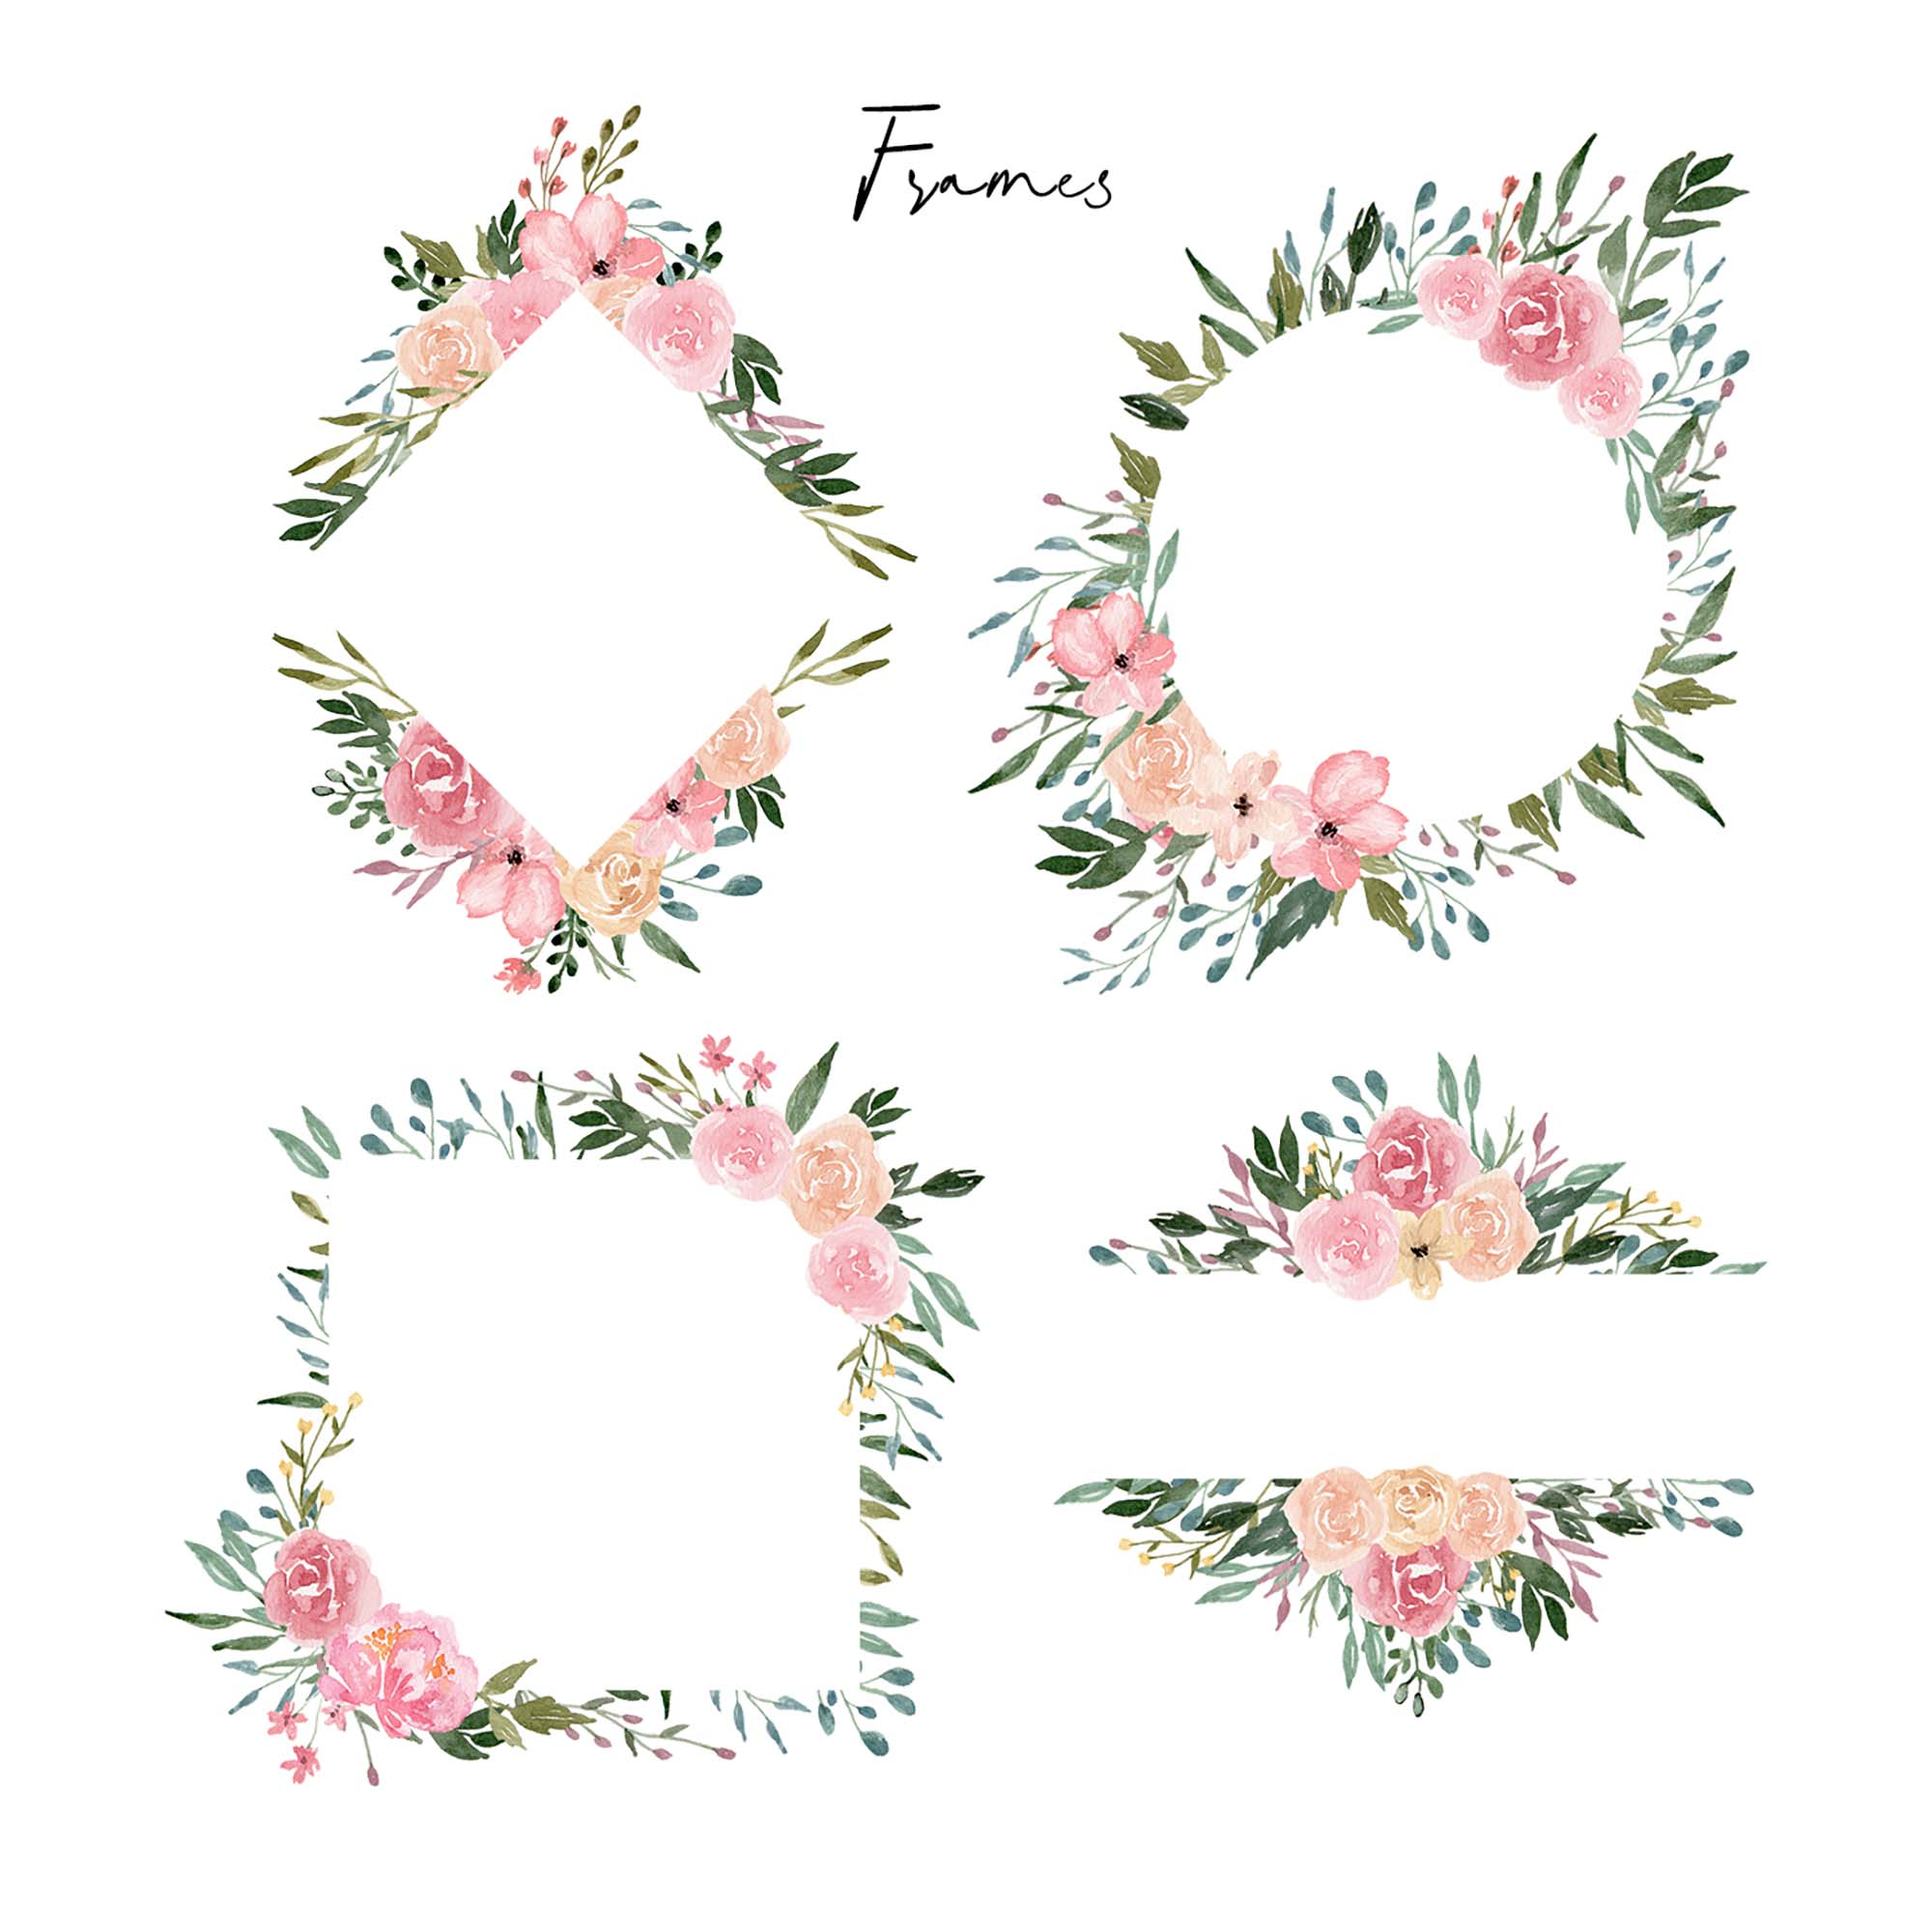 Dusty Blooms Watercolor Graphic Illustrations 3